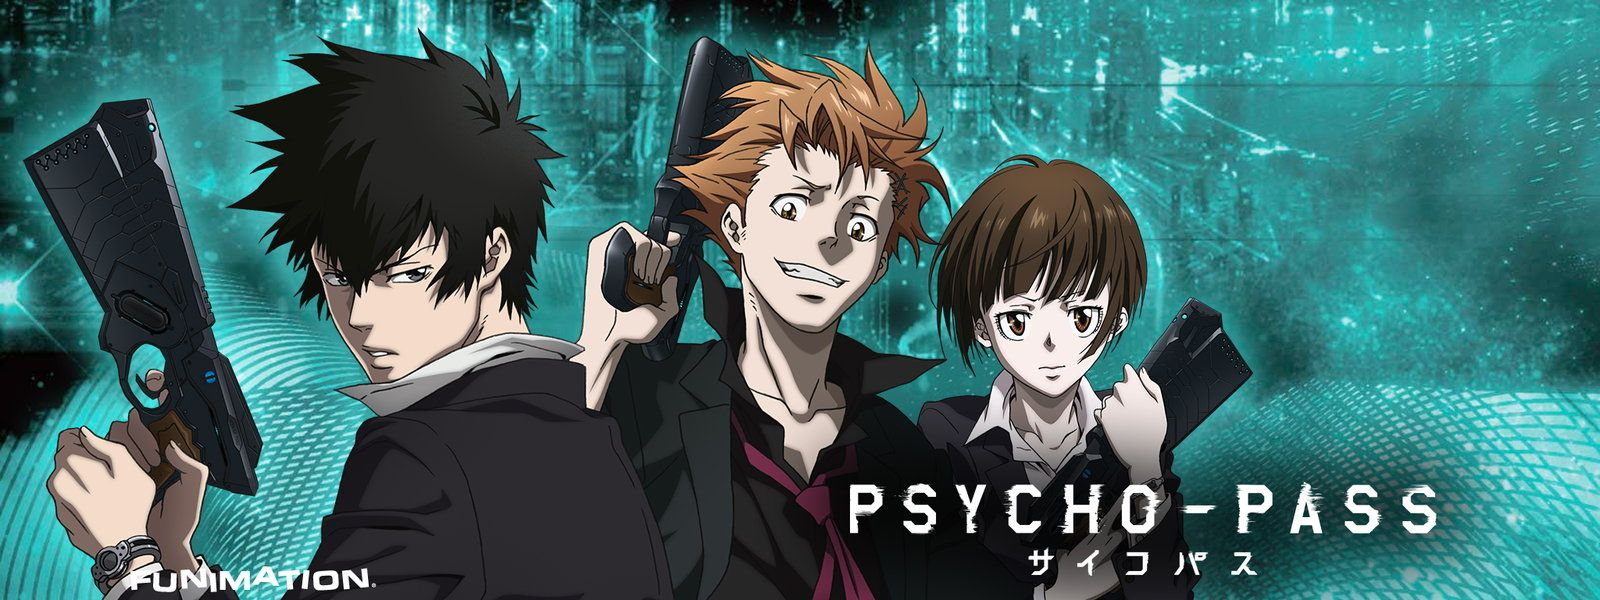 Watch Psycho Pass Online Free Hulu Anime Pinterest Psycho